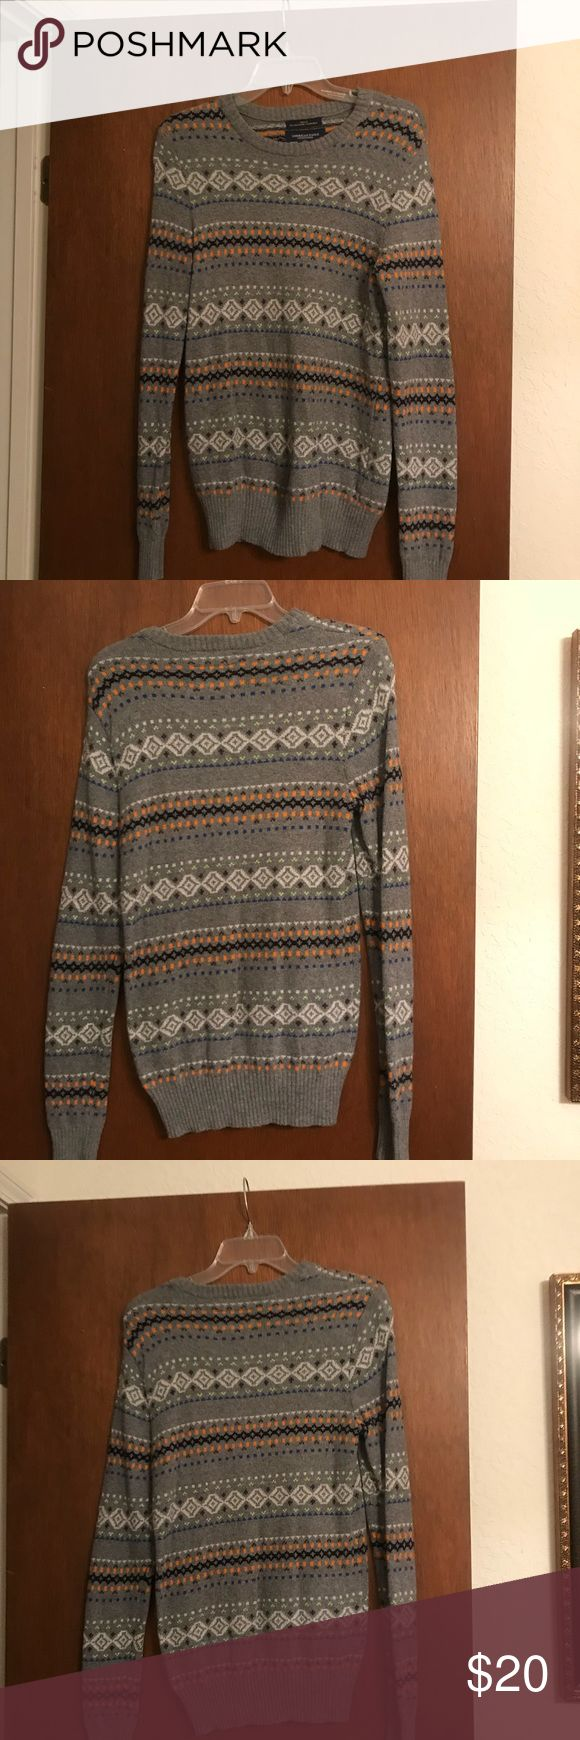 American Eagle Men's sweater. American Eagle Men's sweater. Gray and orange.  Size XS.  Only worn a couple times.  Great condition. American Eagle Outfitters Sweaters Crewneck